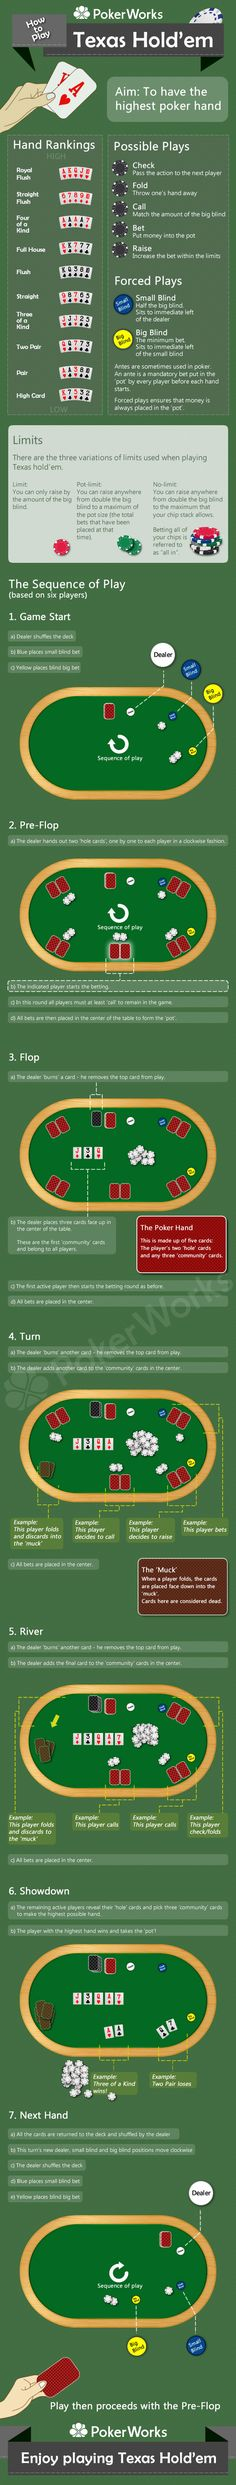 The Most Popular Poker game in the world Texas Hold'em explained in the simple, down to earth language for the beginners of poker.